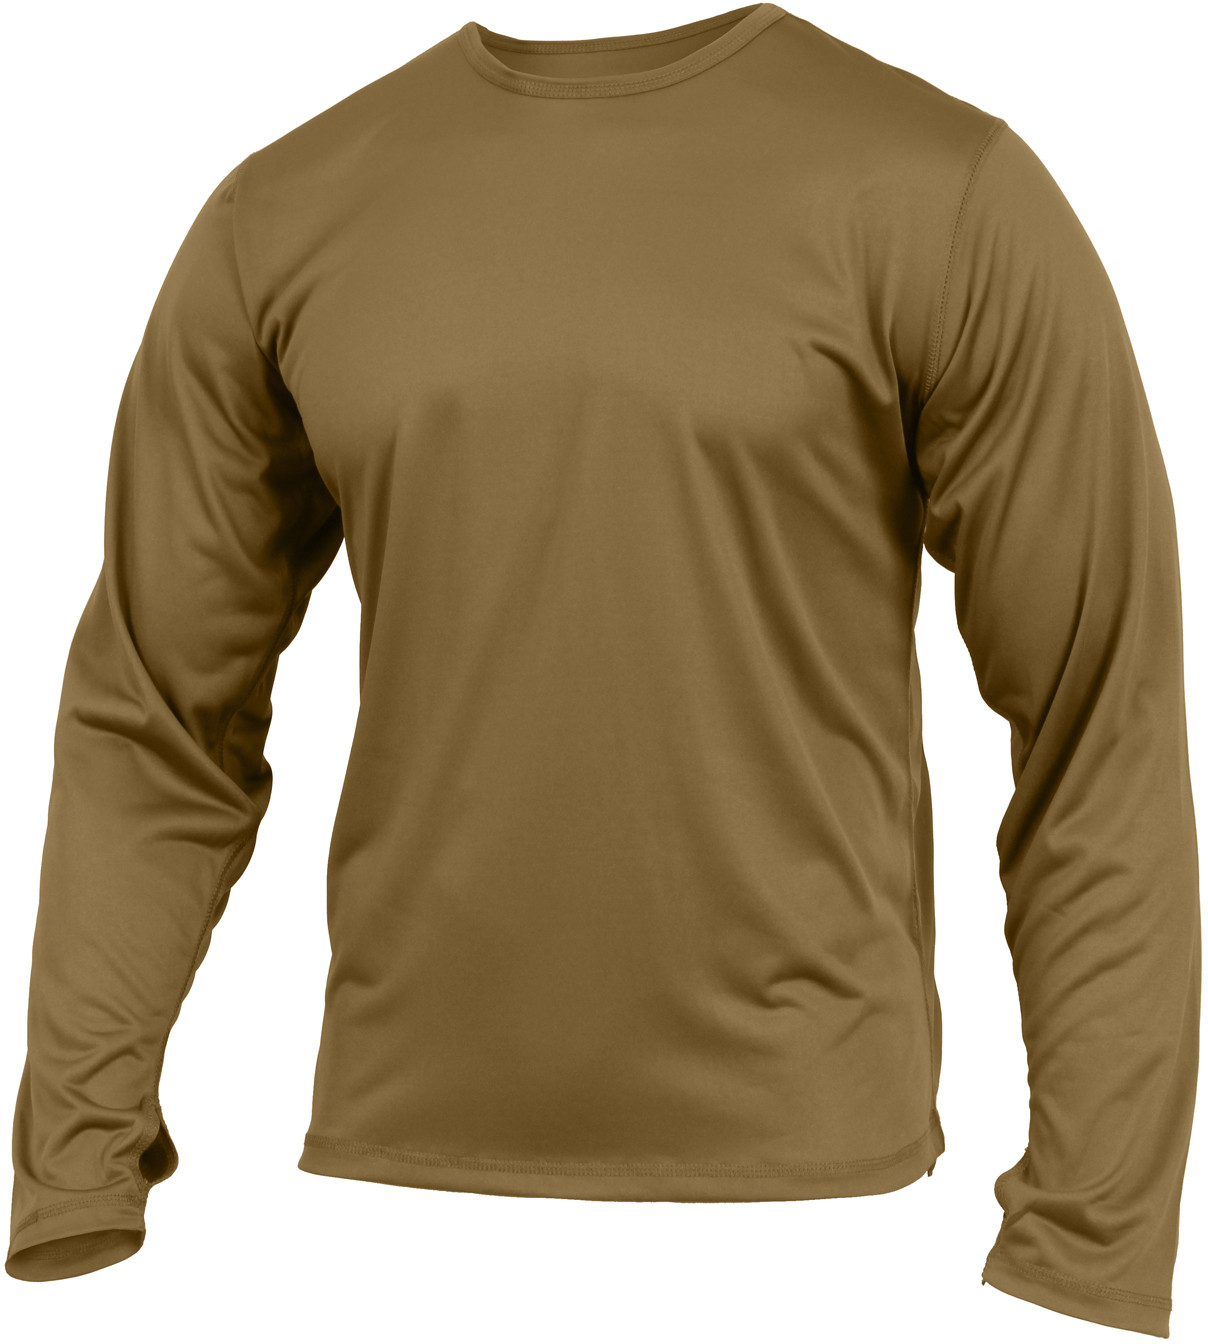 Coyote Brown Military Generation III ECWCS Silk Weight Thermal Shirt 611bc485224